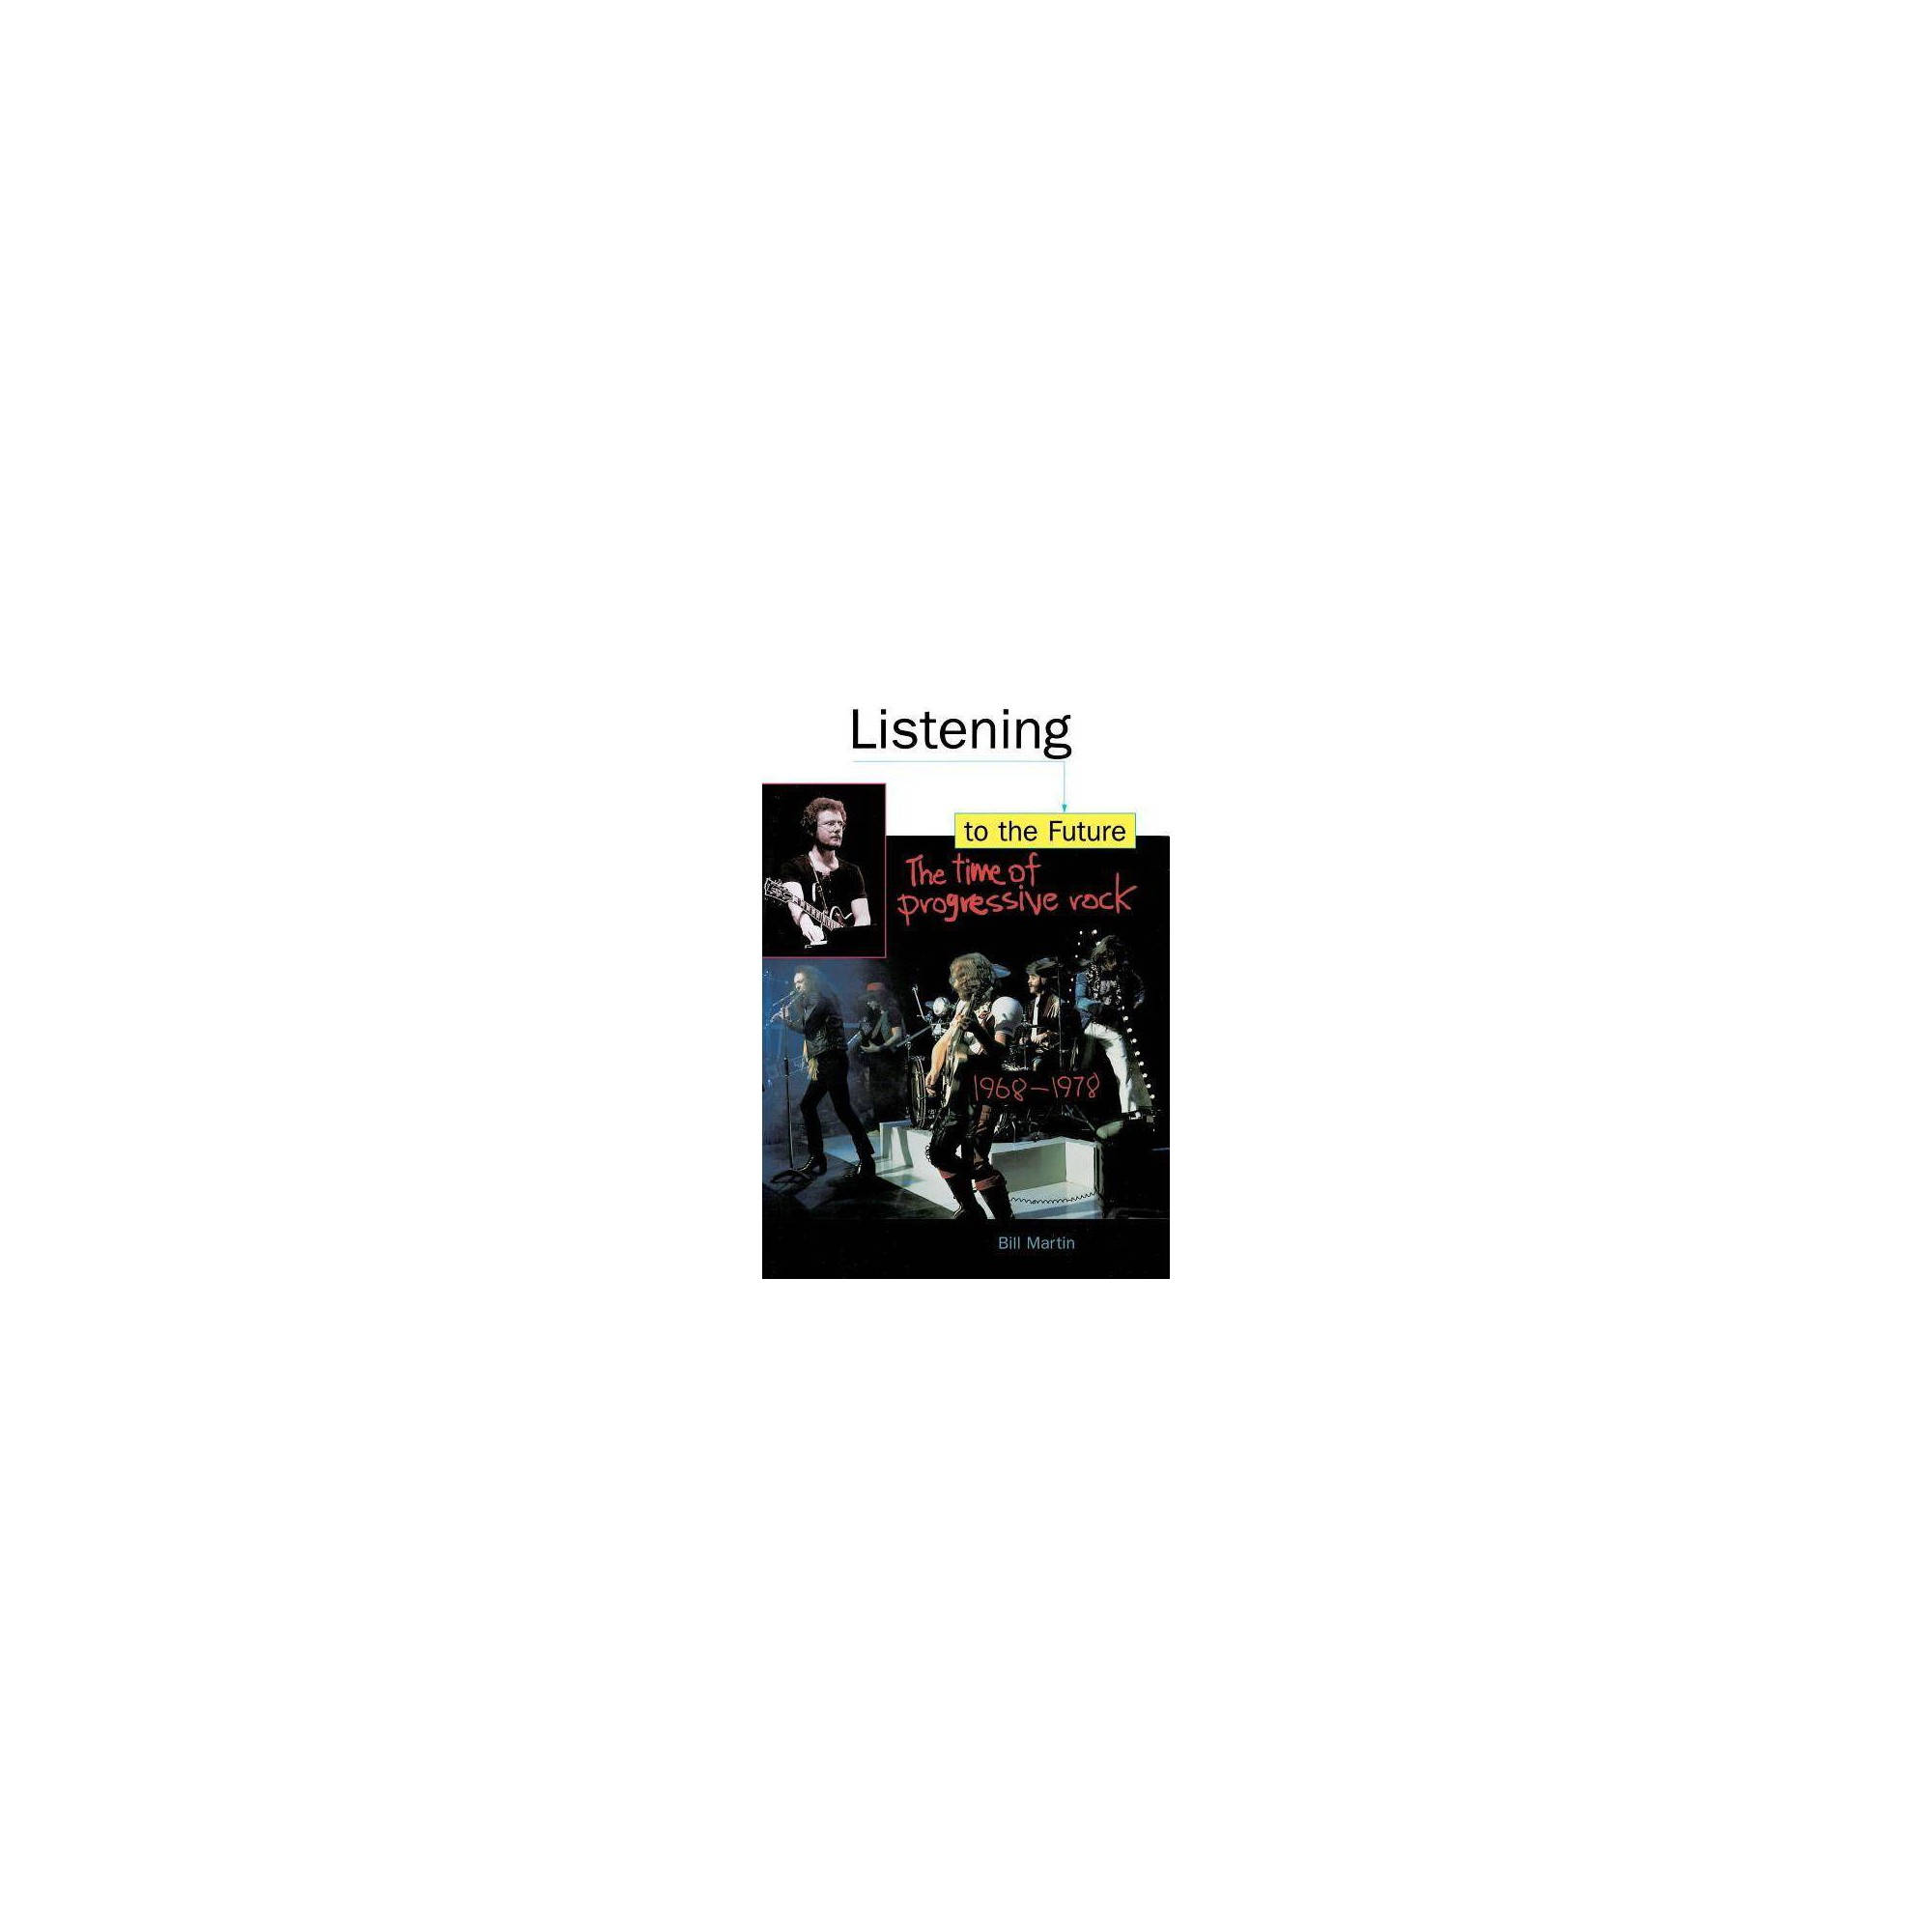 Listening to the Future - (Feedback, the Series in Contemporary Music) by Bill Martin (Paperback)